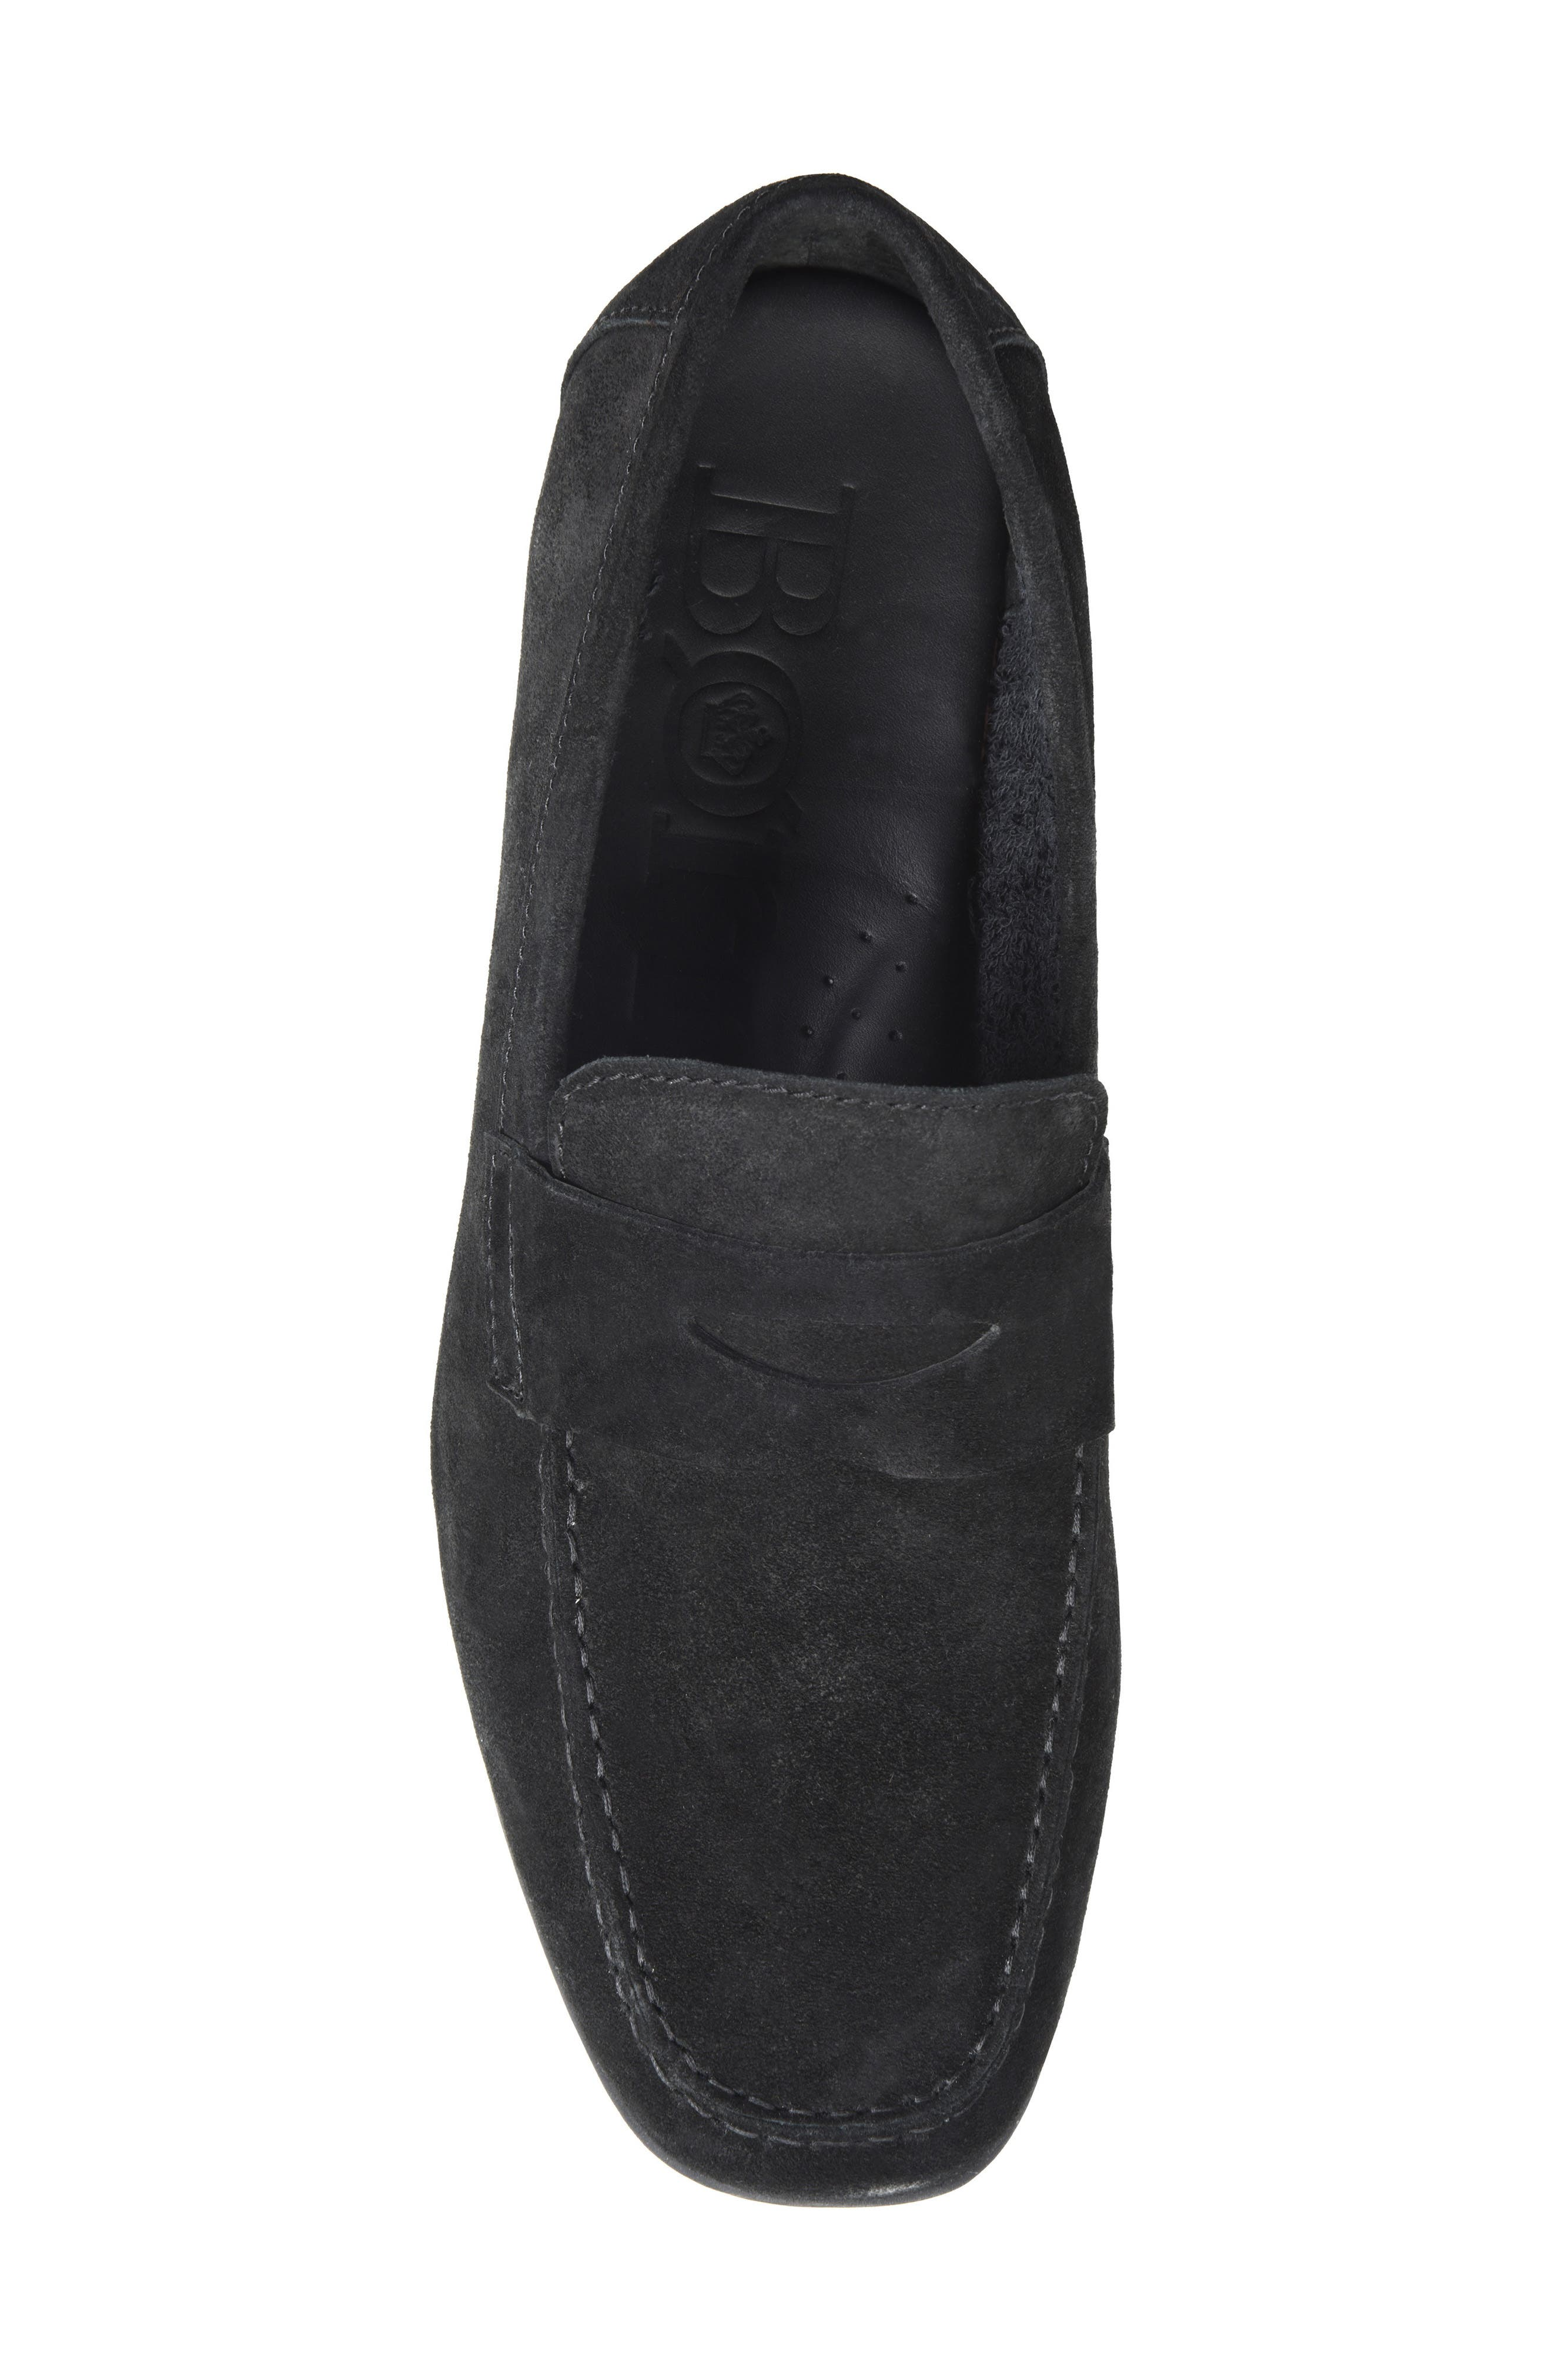 'Dave' Penny Loafer,                             Alternate thumbnail 5, color,                             003